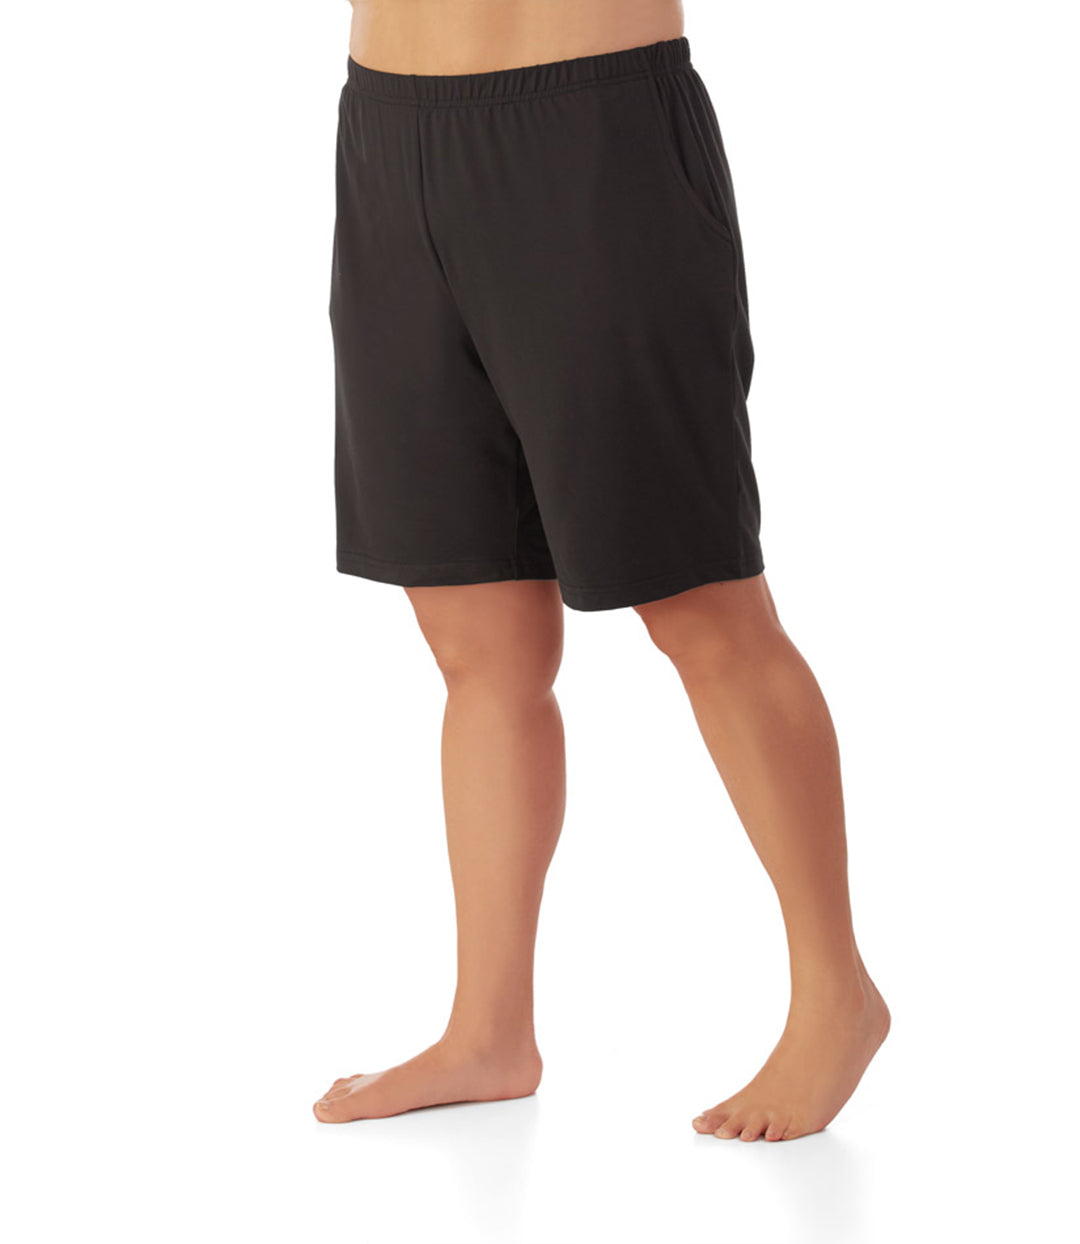 SoftWik® Relaxed Fit Shorts with pockets Black-Plus Size Activewear & Athletic Clothing-Osheka, Inc-XL-Black-JunoActive